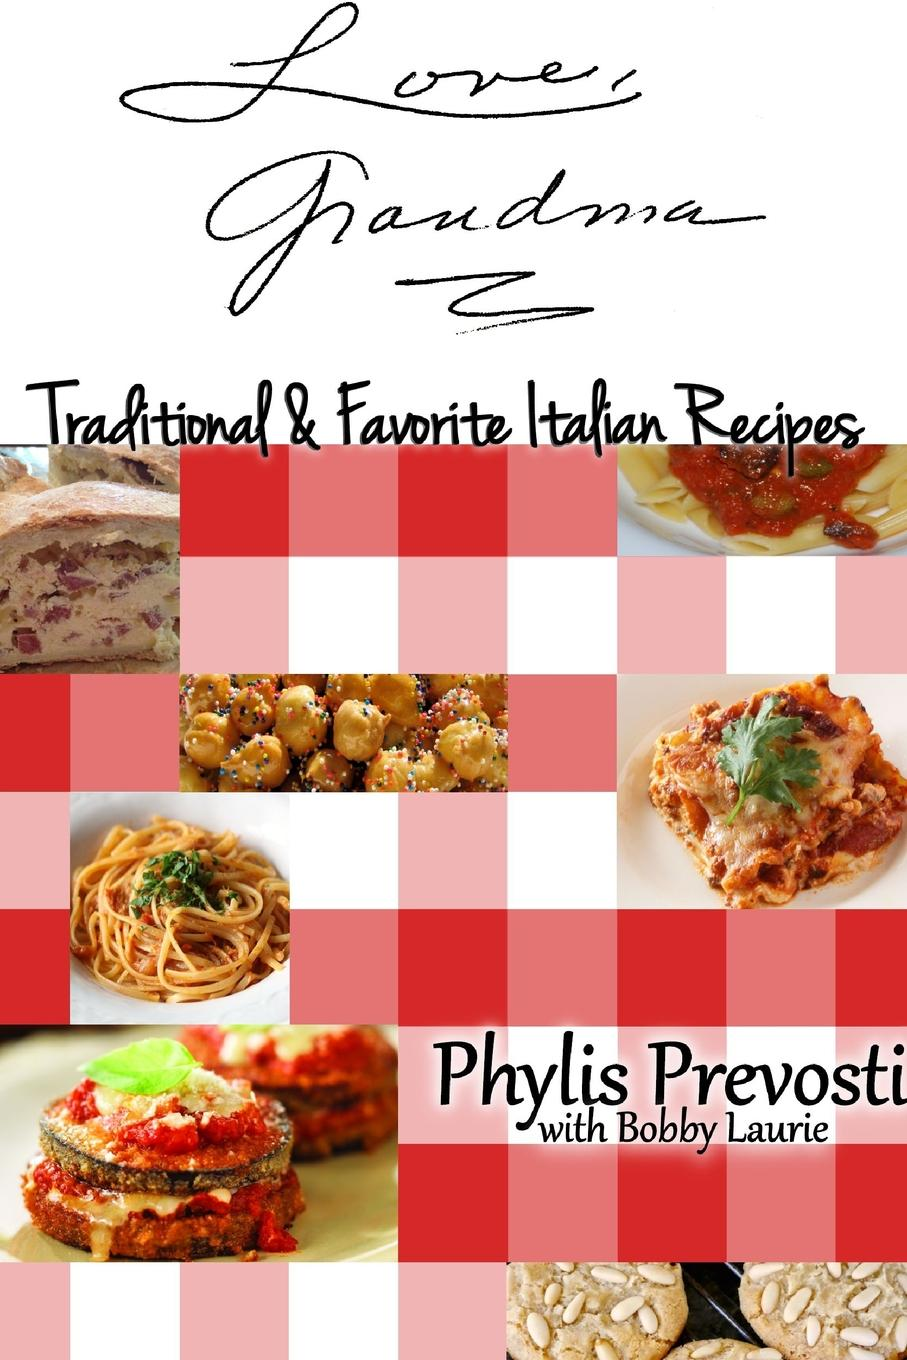 купить Bobby Laurie, Phylis Prevosti Love, Grandma - Traditional and Favorite Italian Recipes онлайн